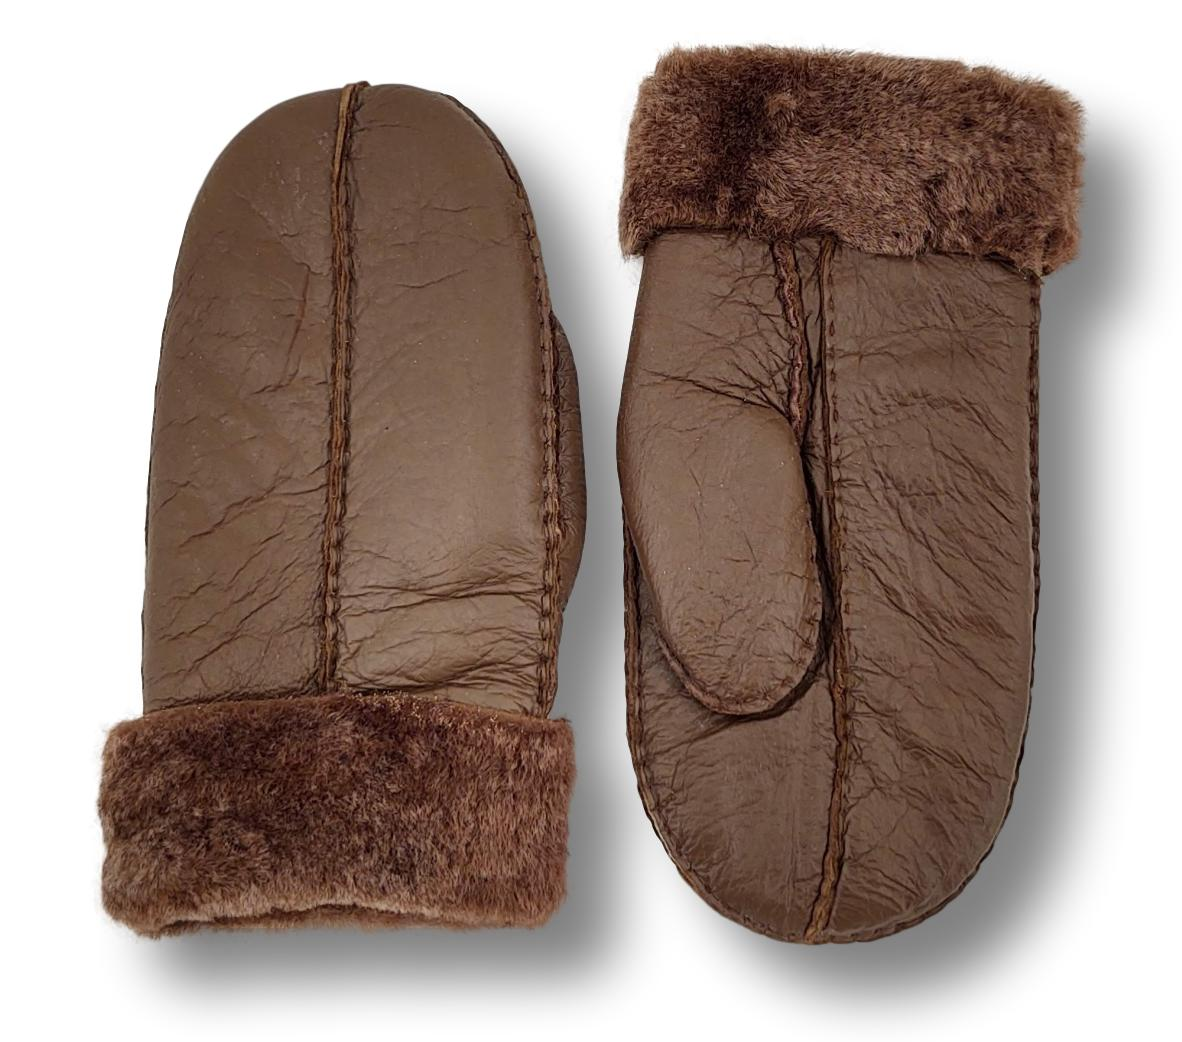 ZXM-159 - Suede Lamb / Ruskindsluffe - Accesories - Assorted Brown | STAMPE PELS